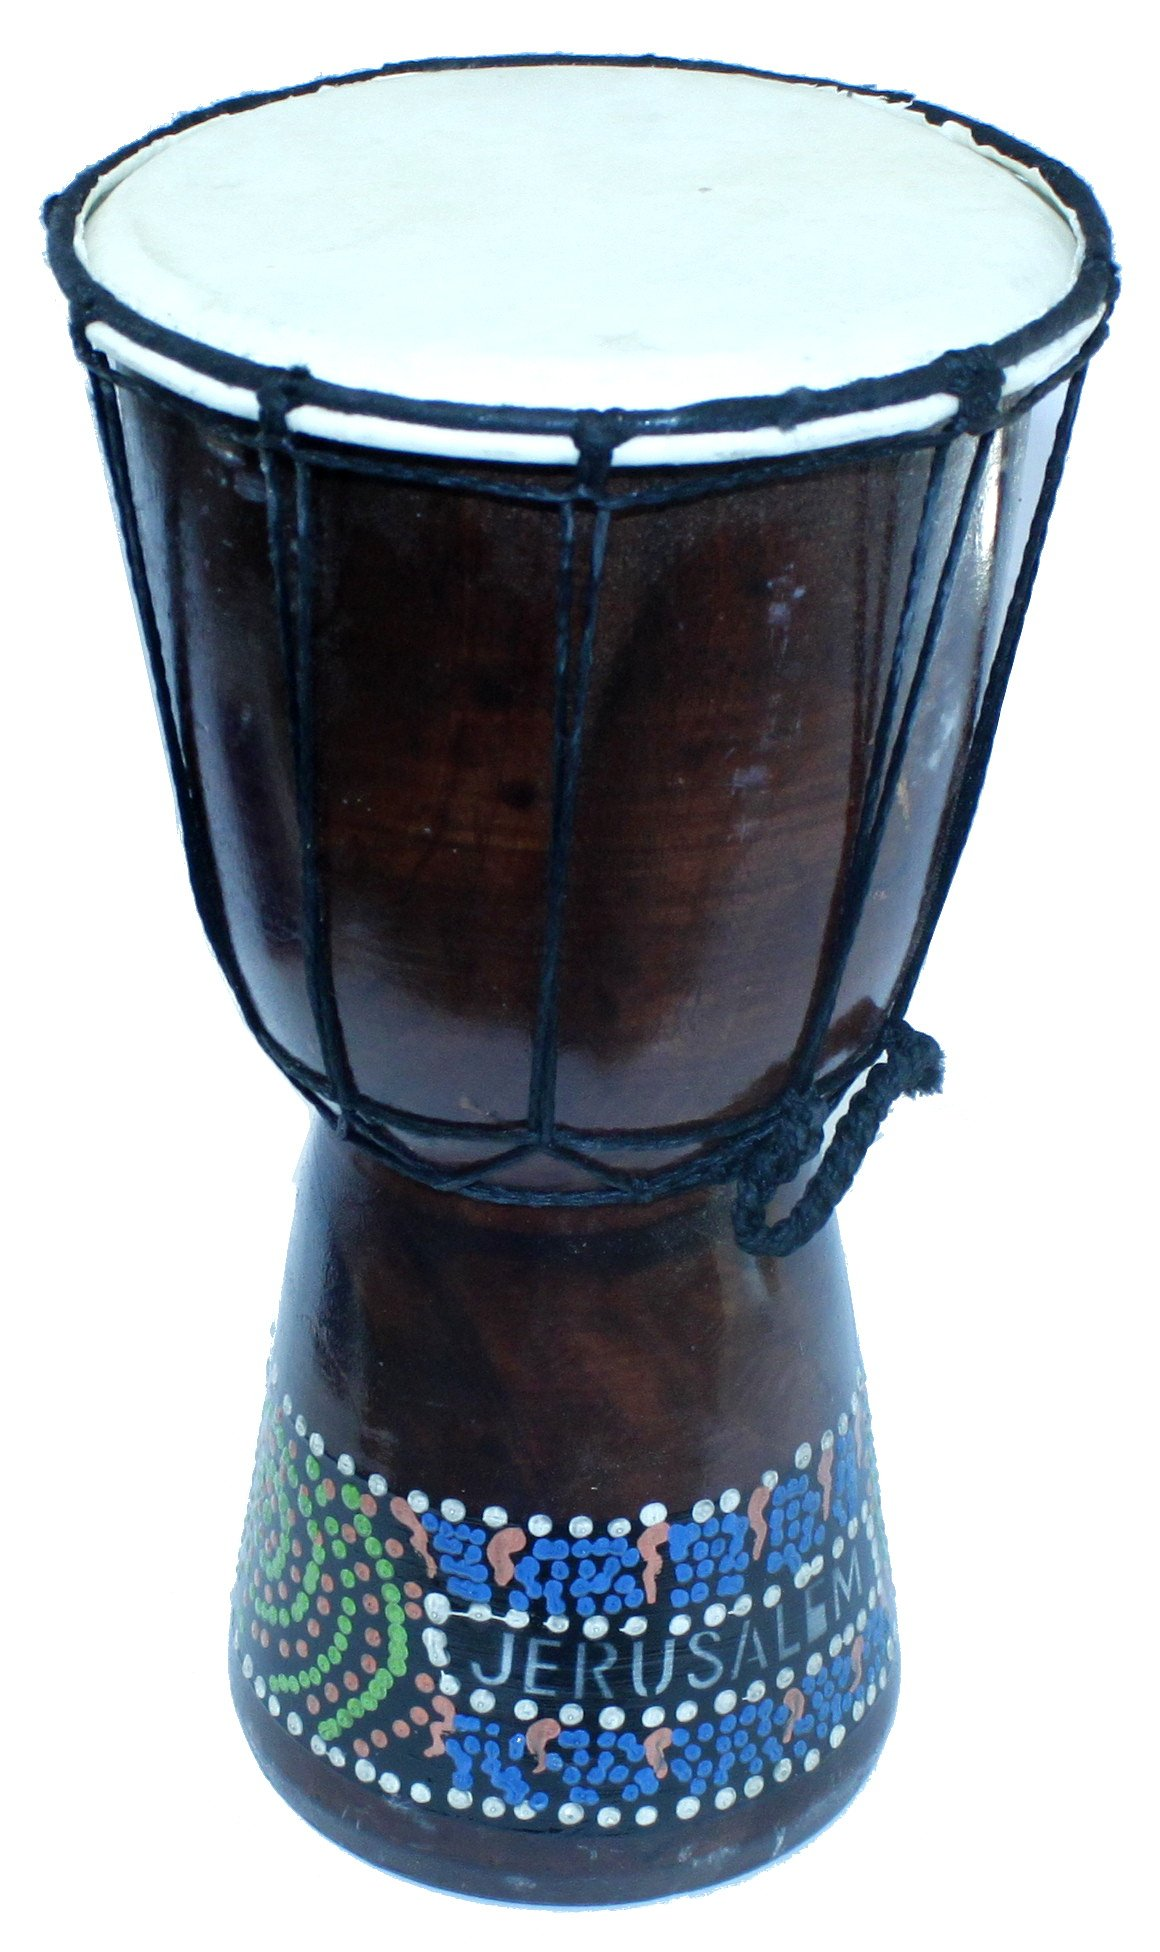 Djembe or Jembe Drum With With colored dots from Jerusalem - Large size (30 cm or 12 Inches high) by Holy Land Market